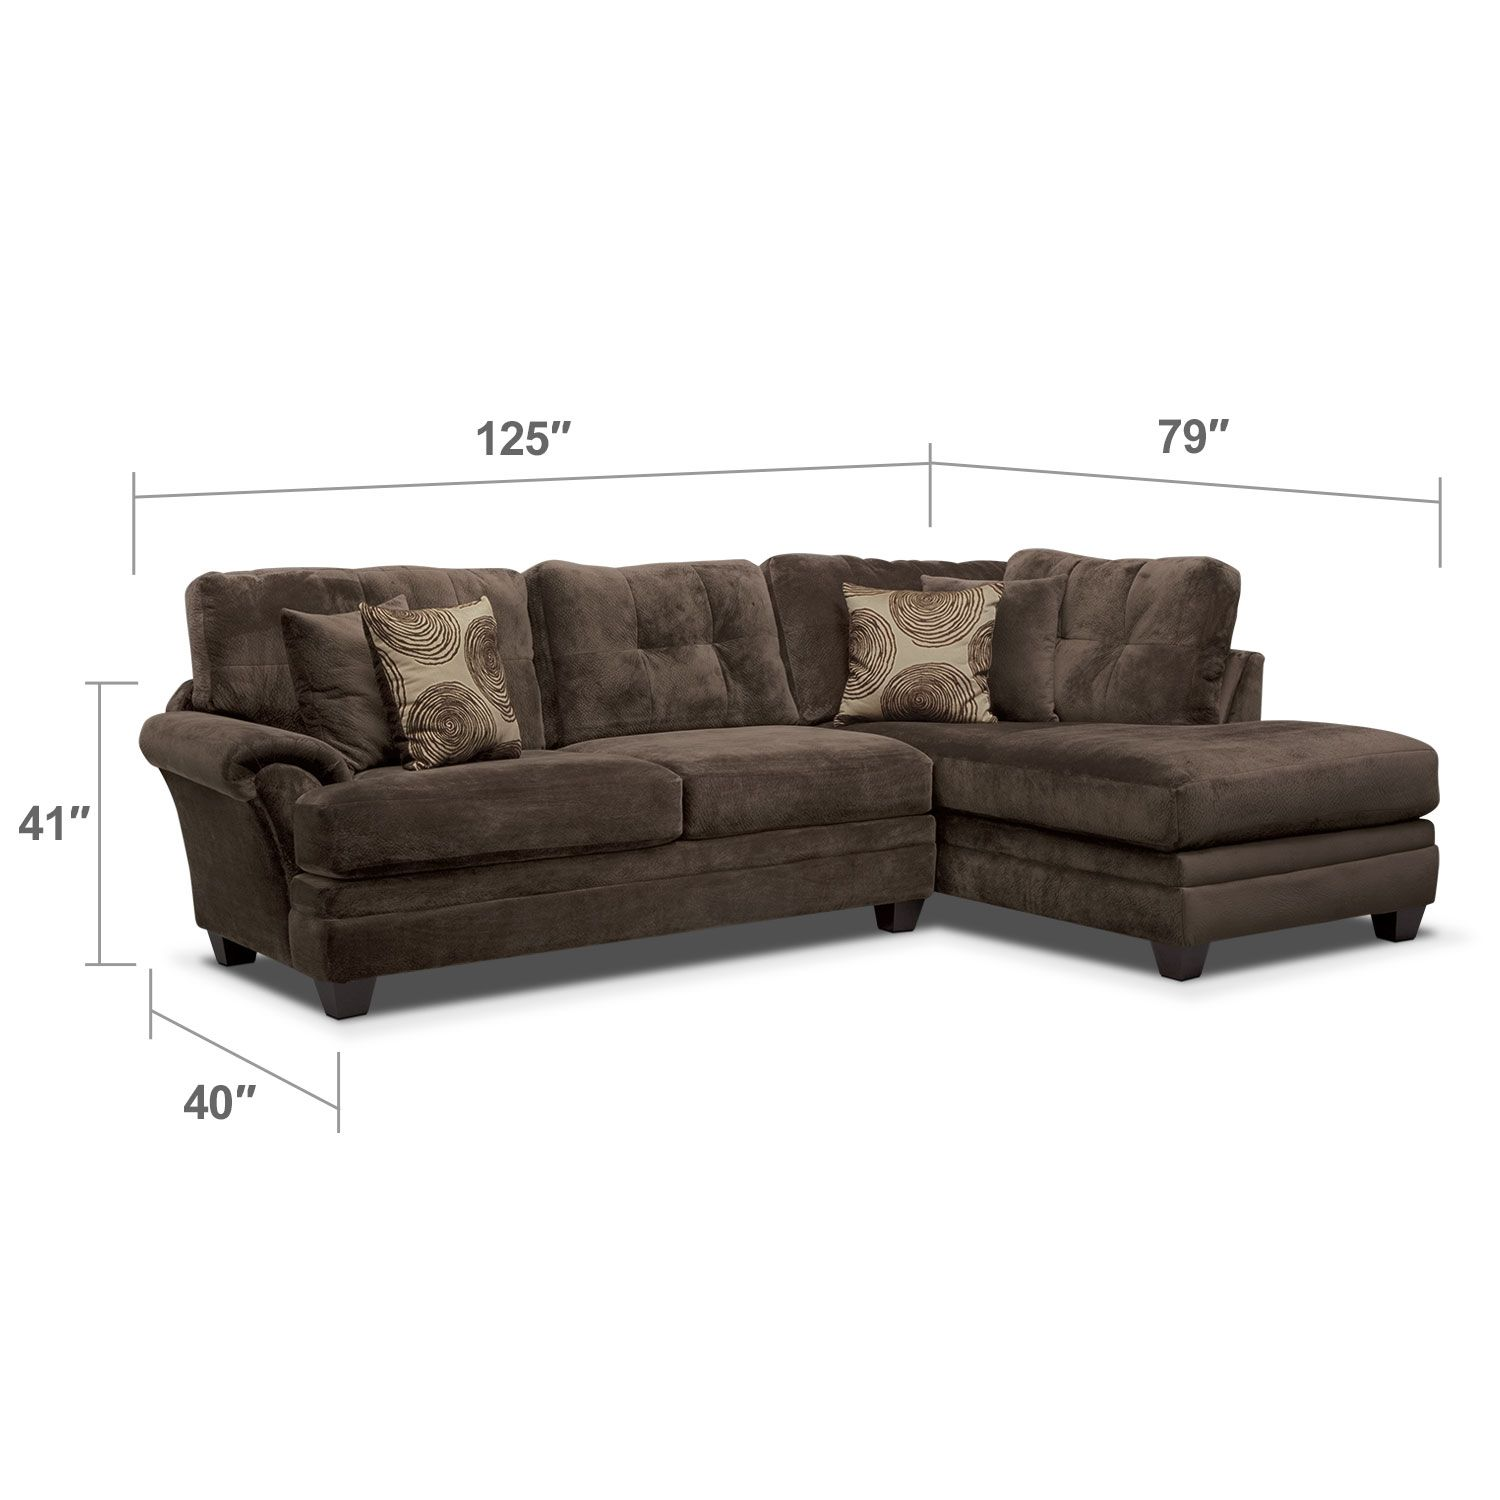 Cordelle 2-Piece Right-Facing Chaise Sectional - Chocolate ...